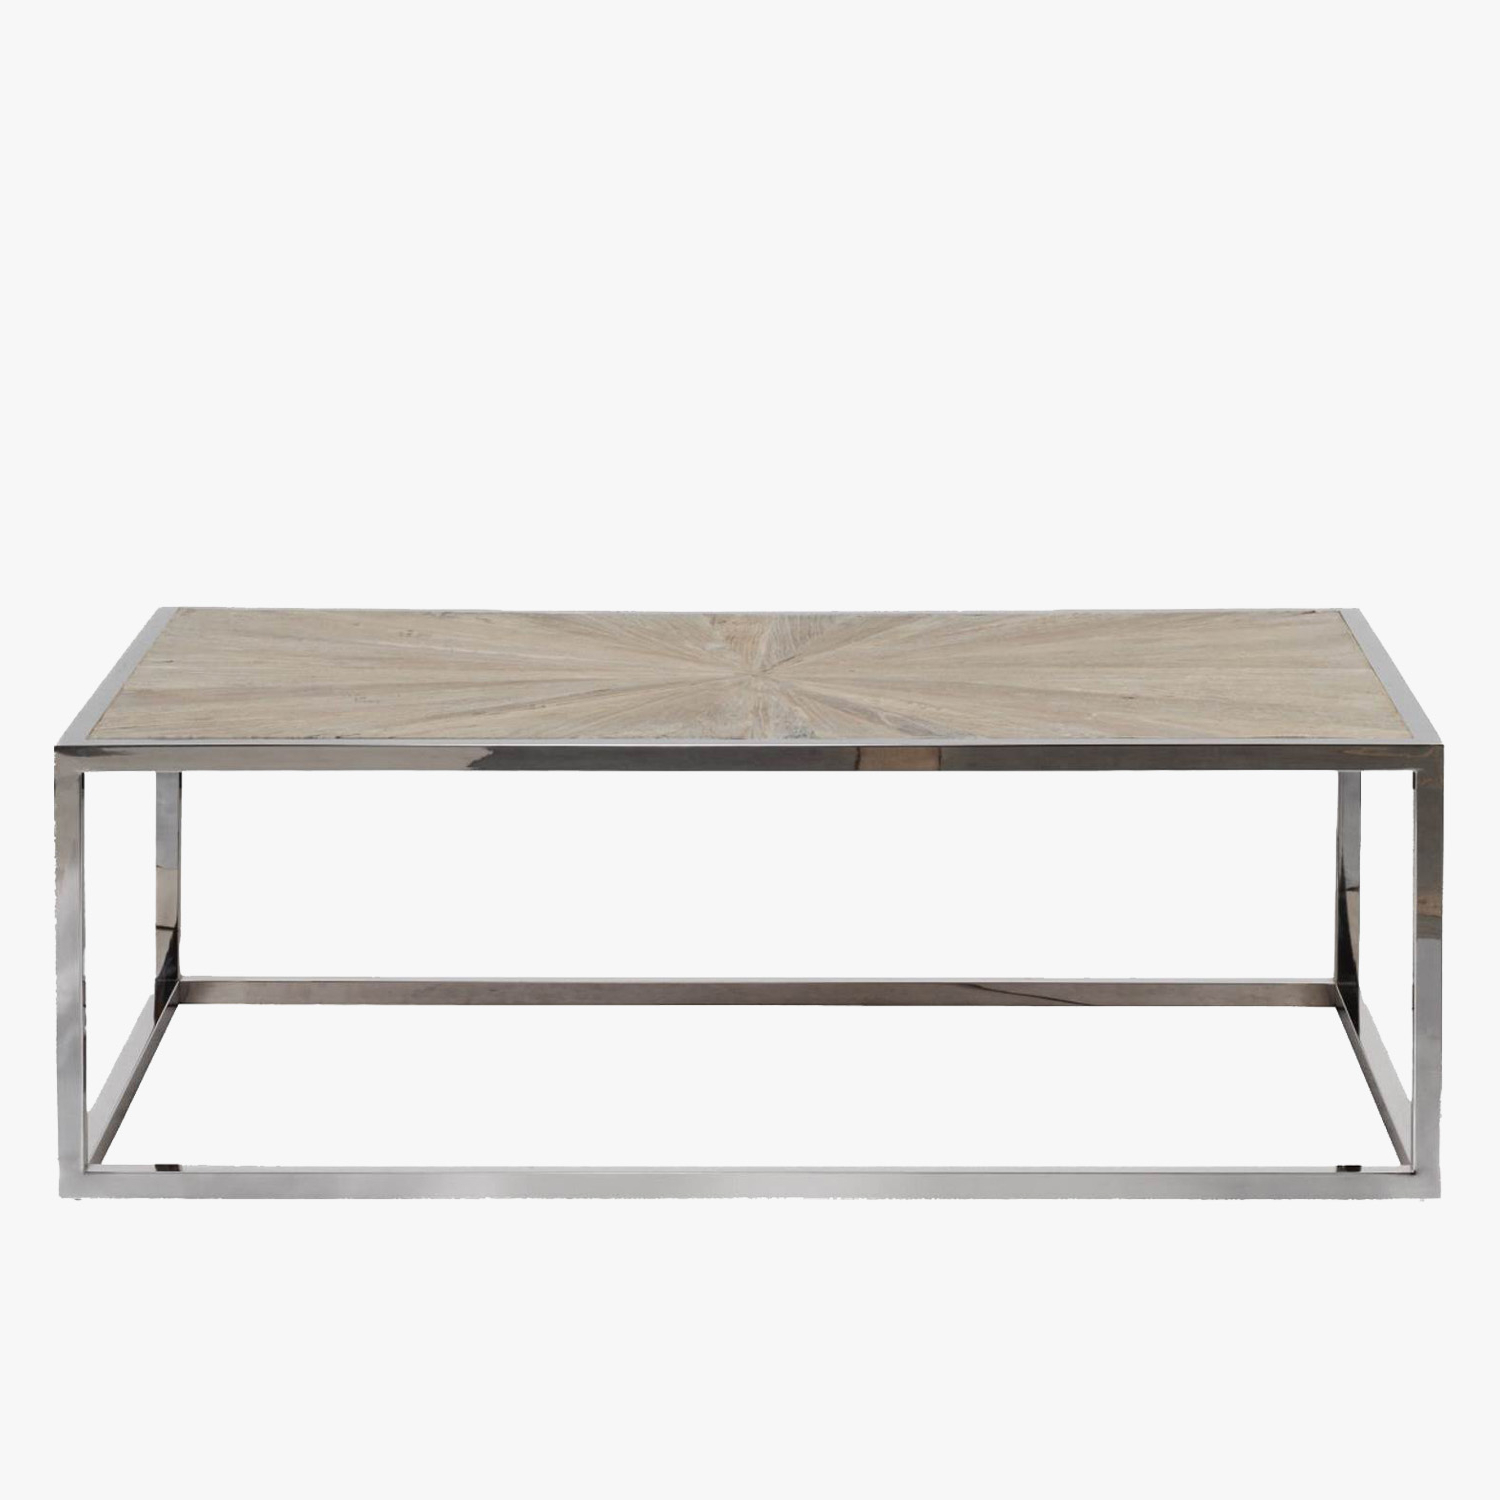 Parquet Coffee Tables Within Best And Newest Parquet Top Chrome Coffee Table – Shop Coffee Tables – Dear Keaton (View 7 of 20)